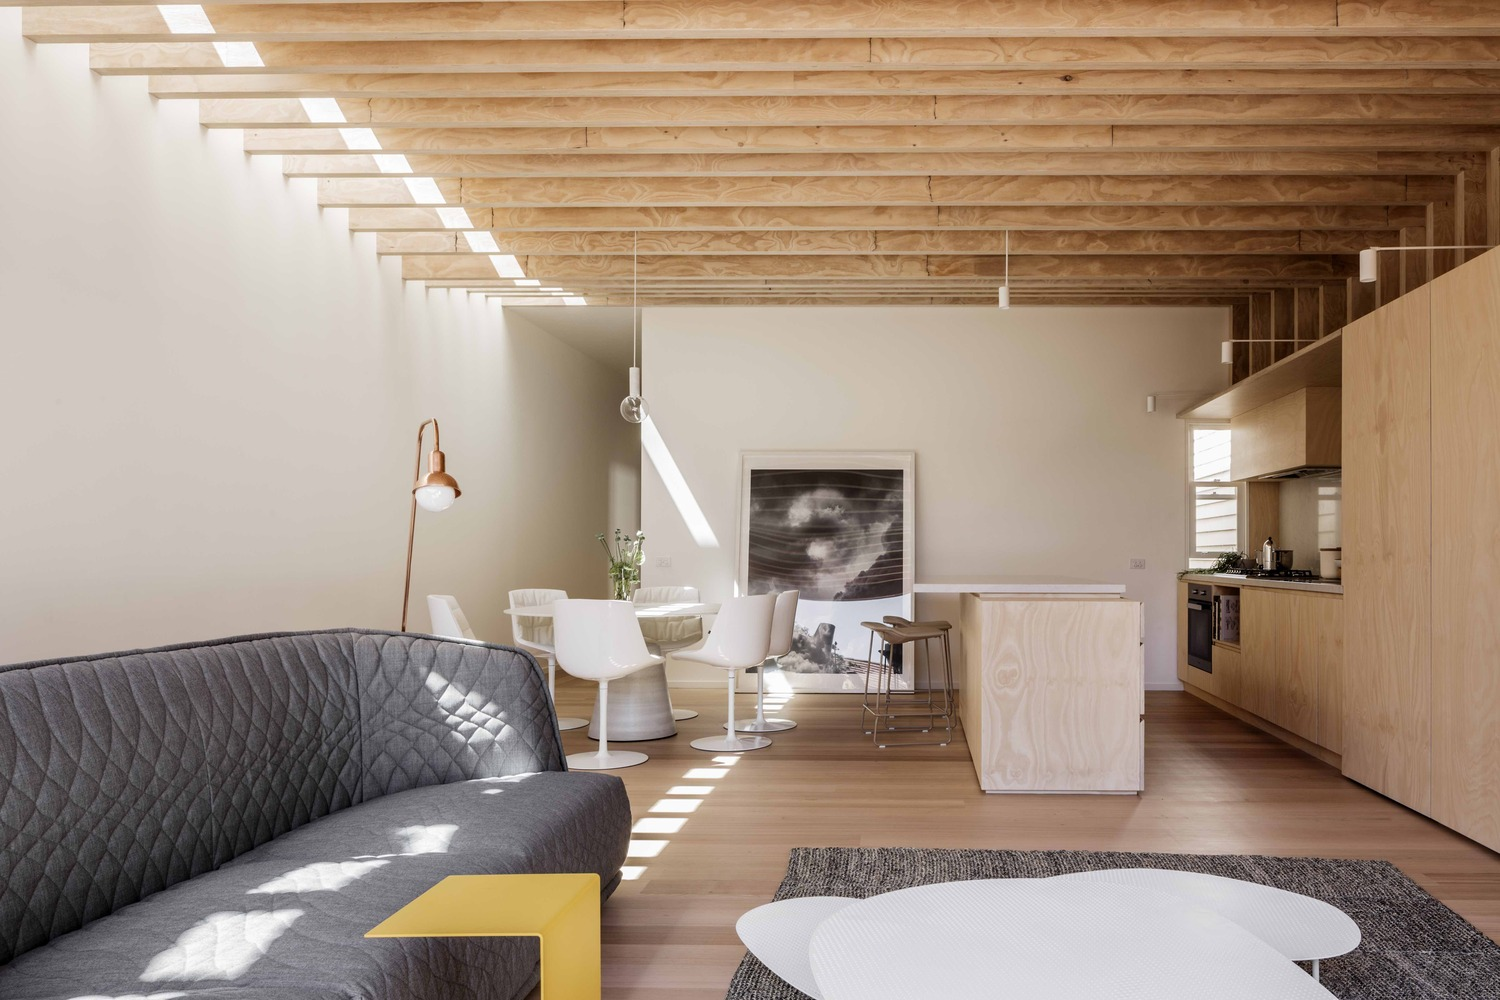 This Renovation Turns the Traditional Terrace Layout on its Head